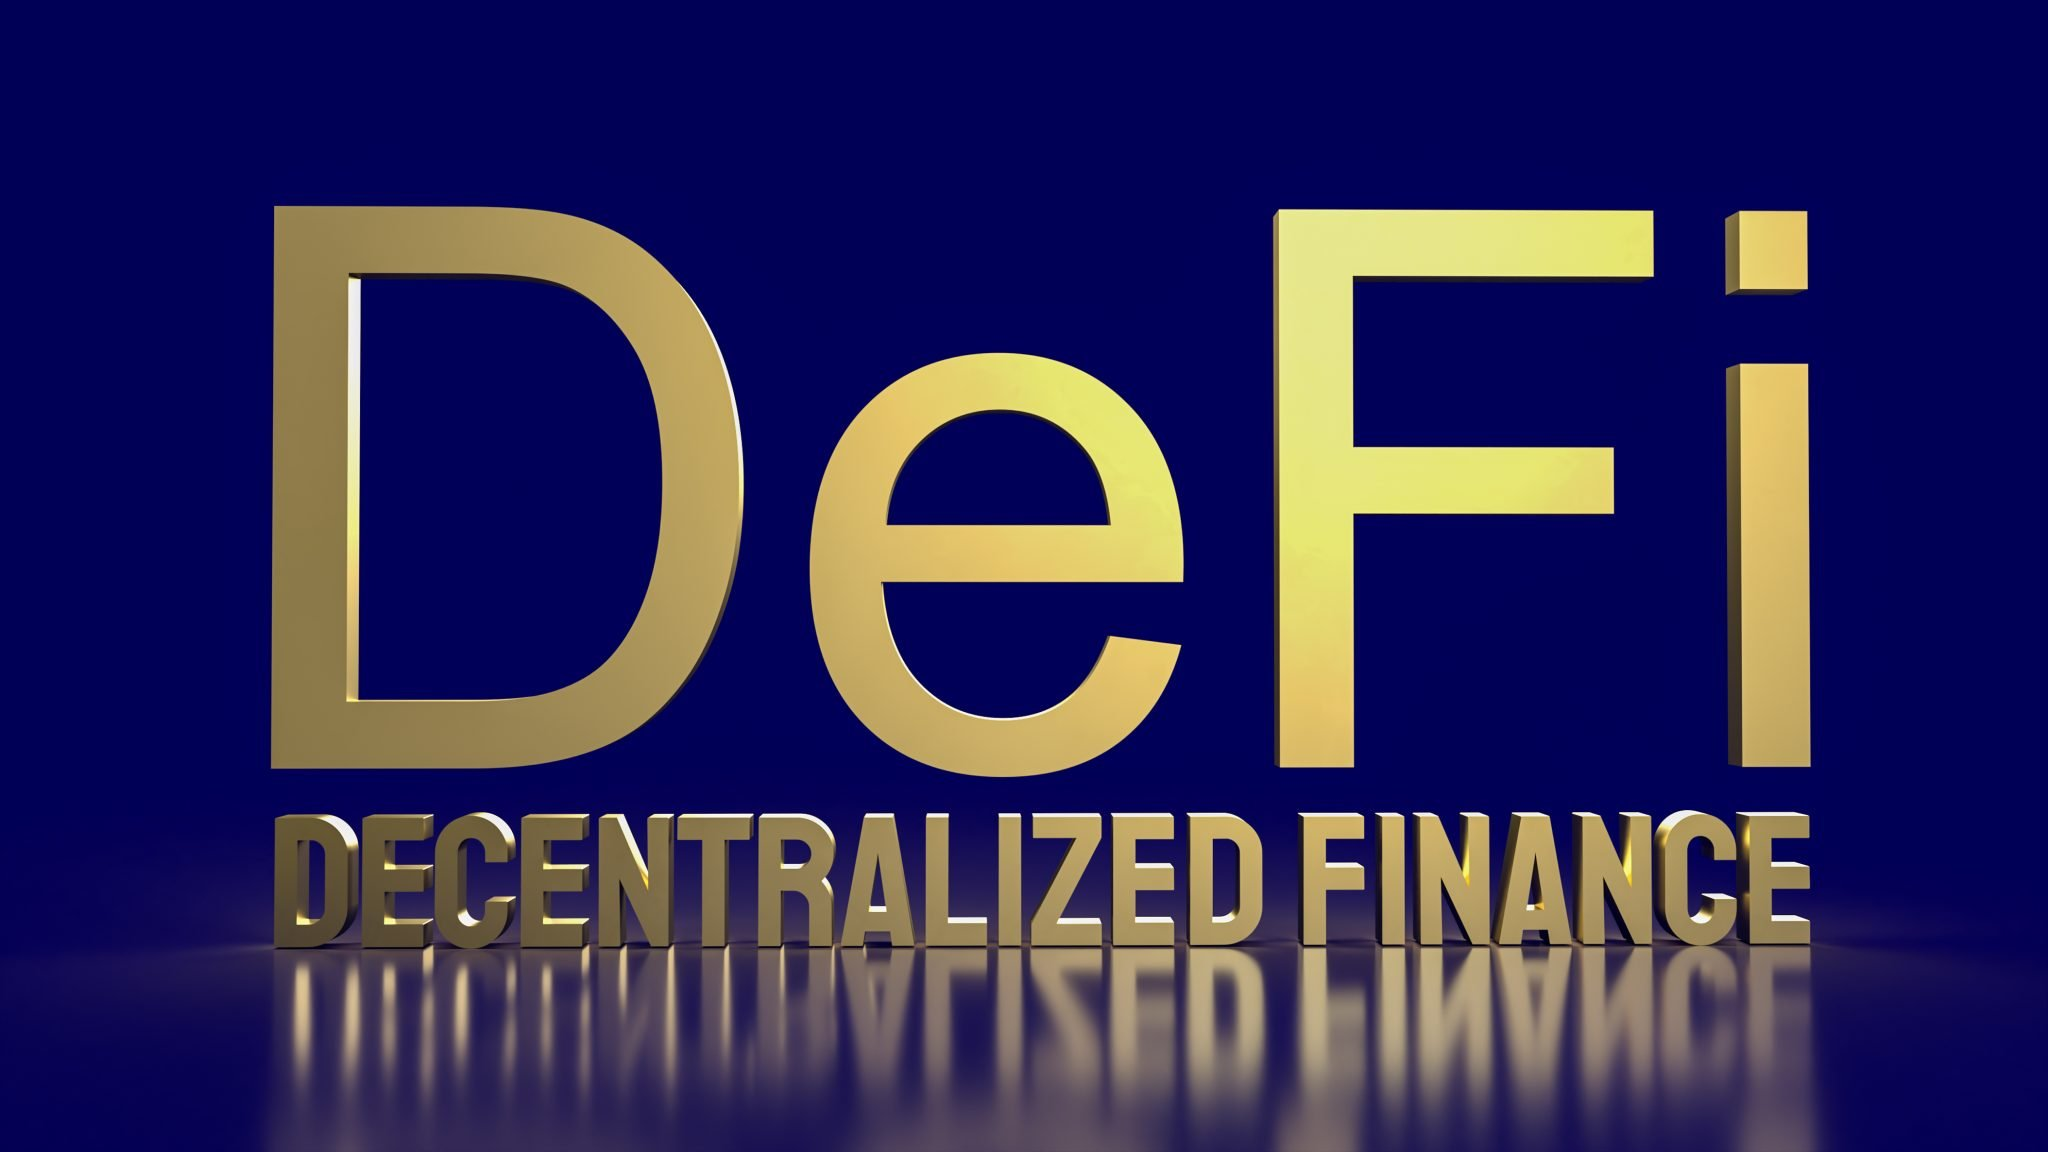 The  defi farming gold word on blue background  for cryptocurrency business concept 3d rendering